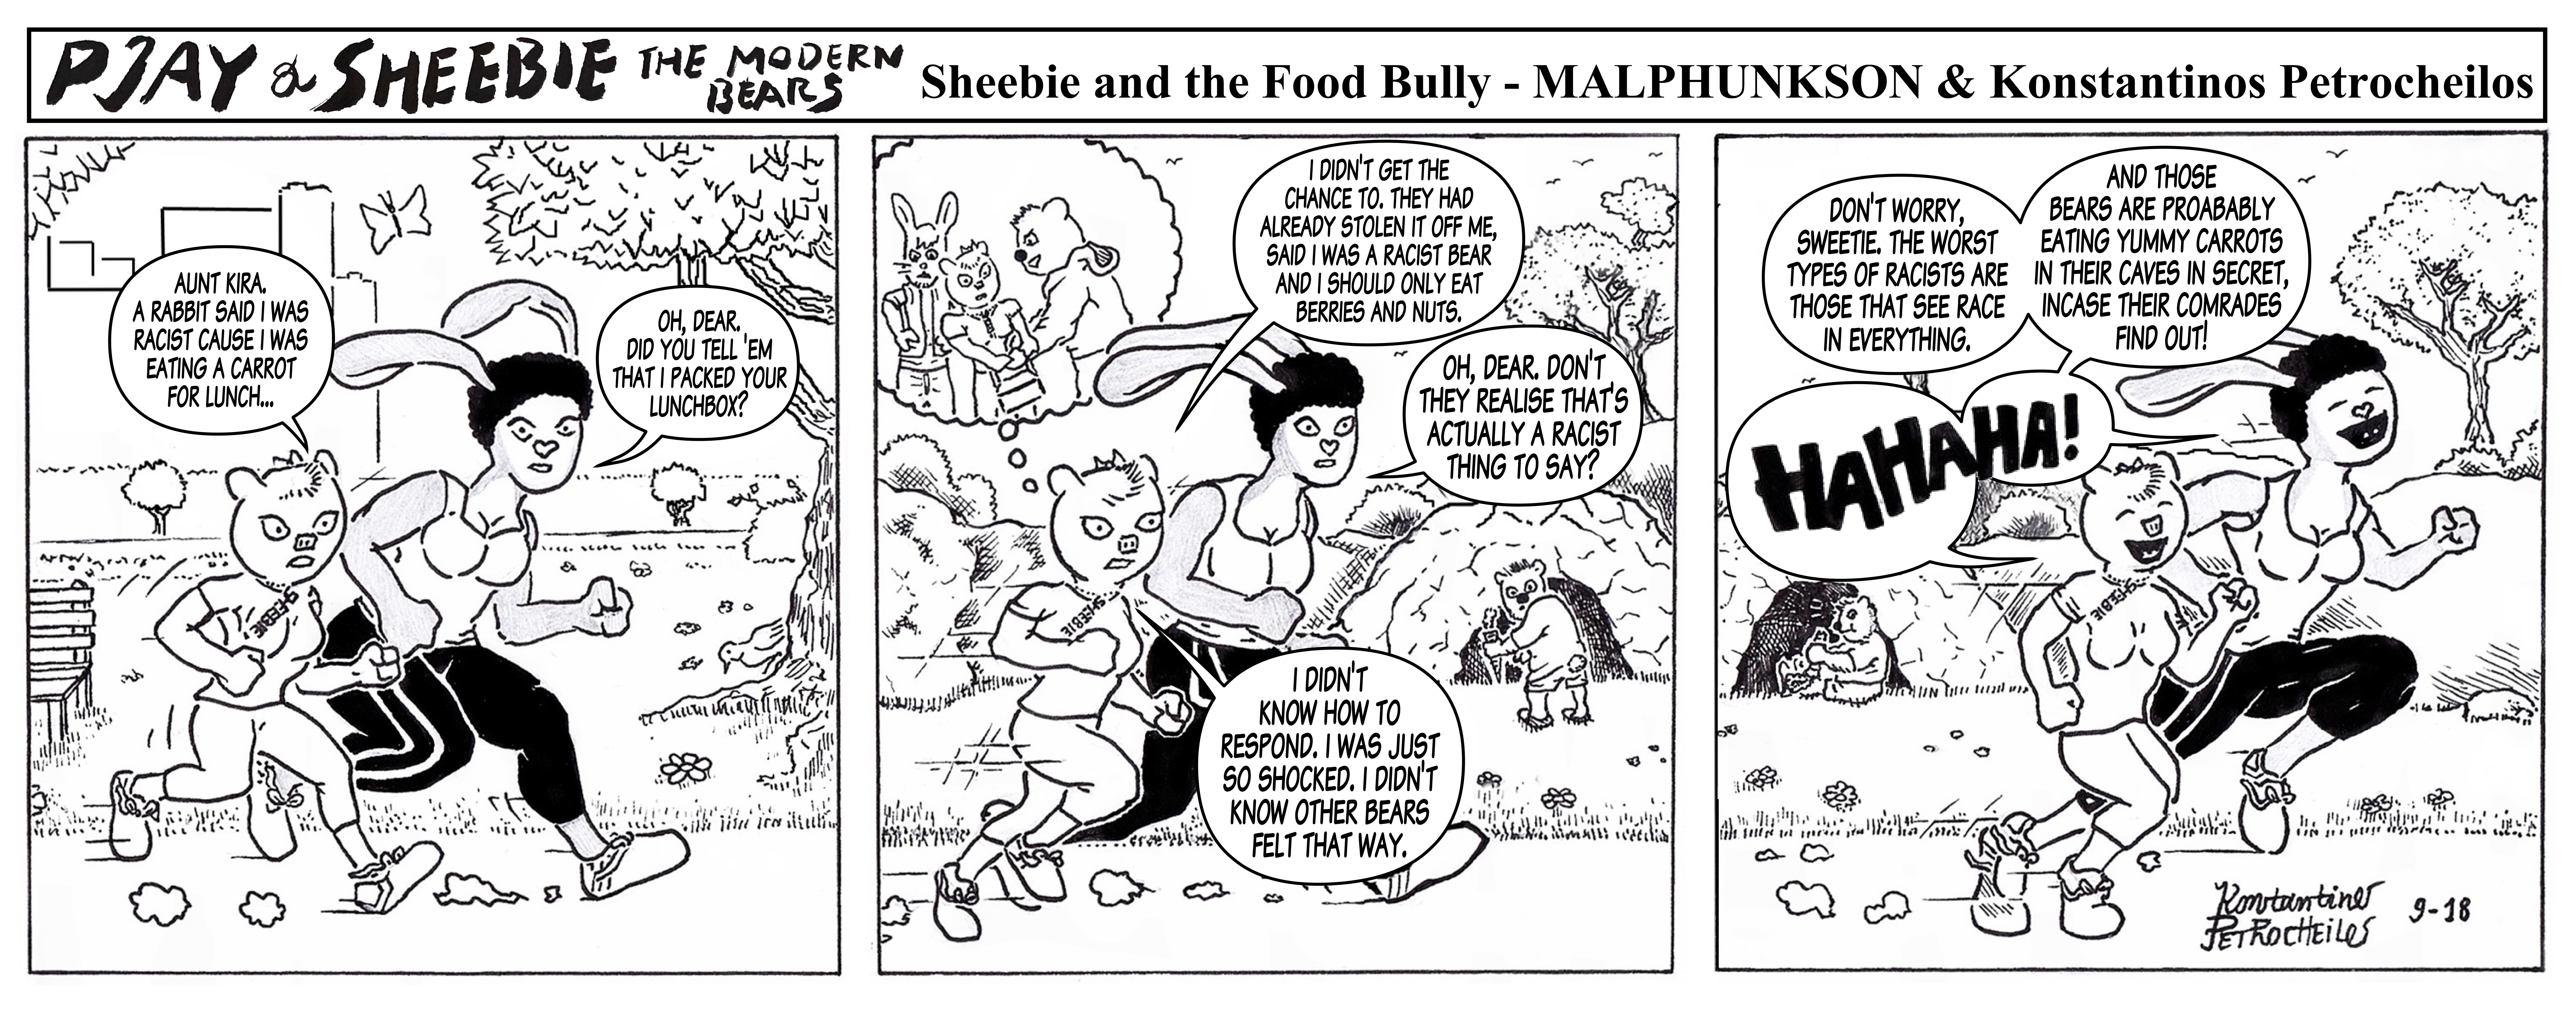 Sheebie and the Food Bully